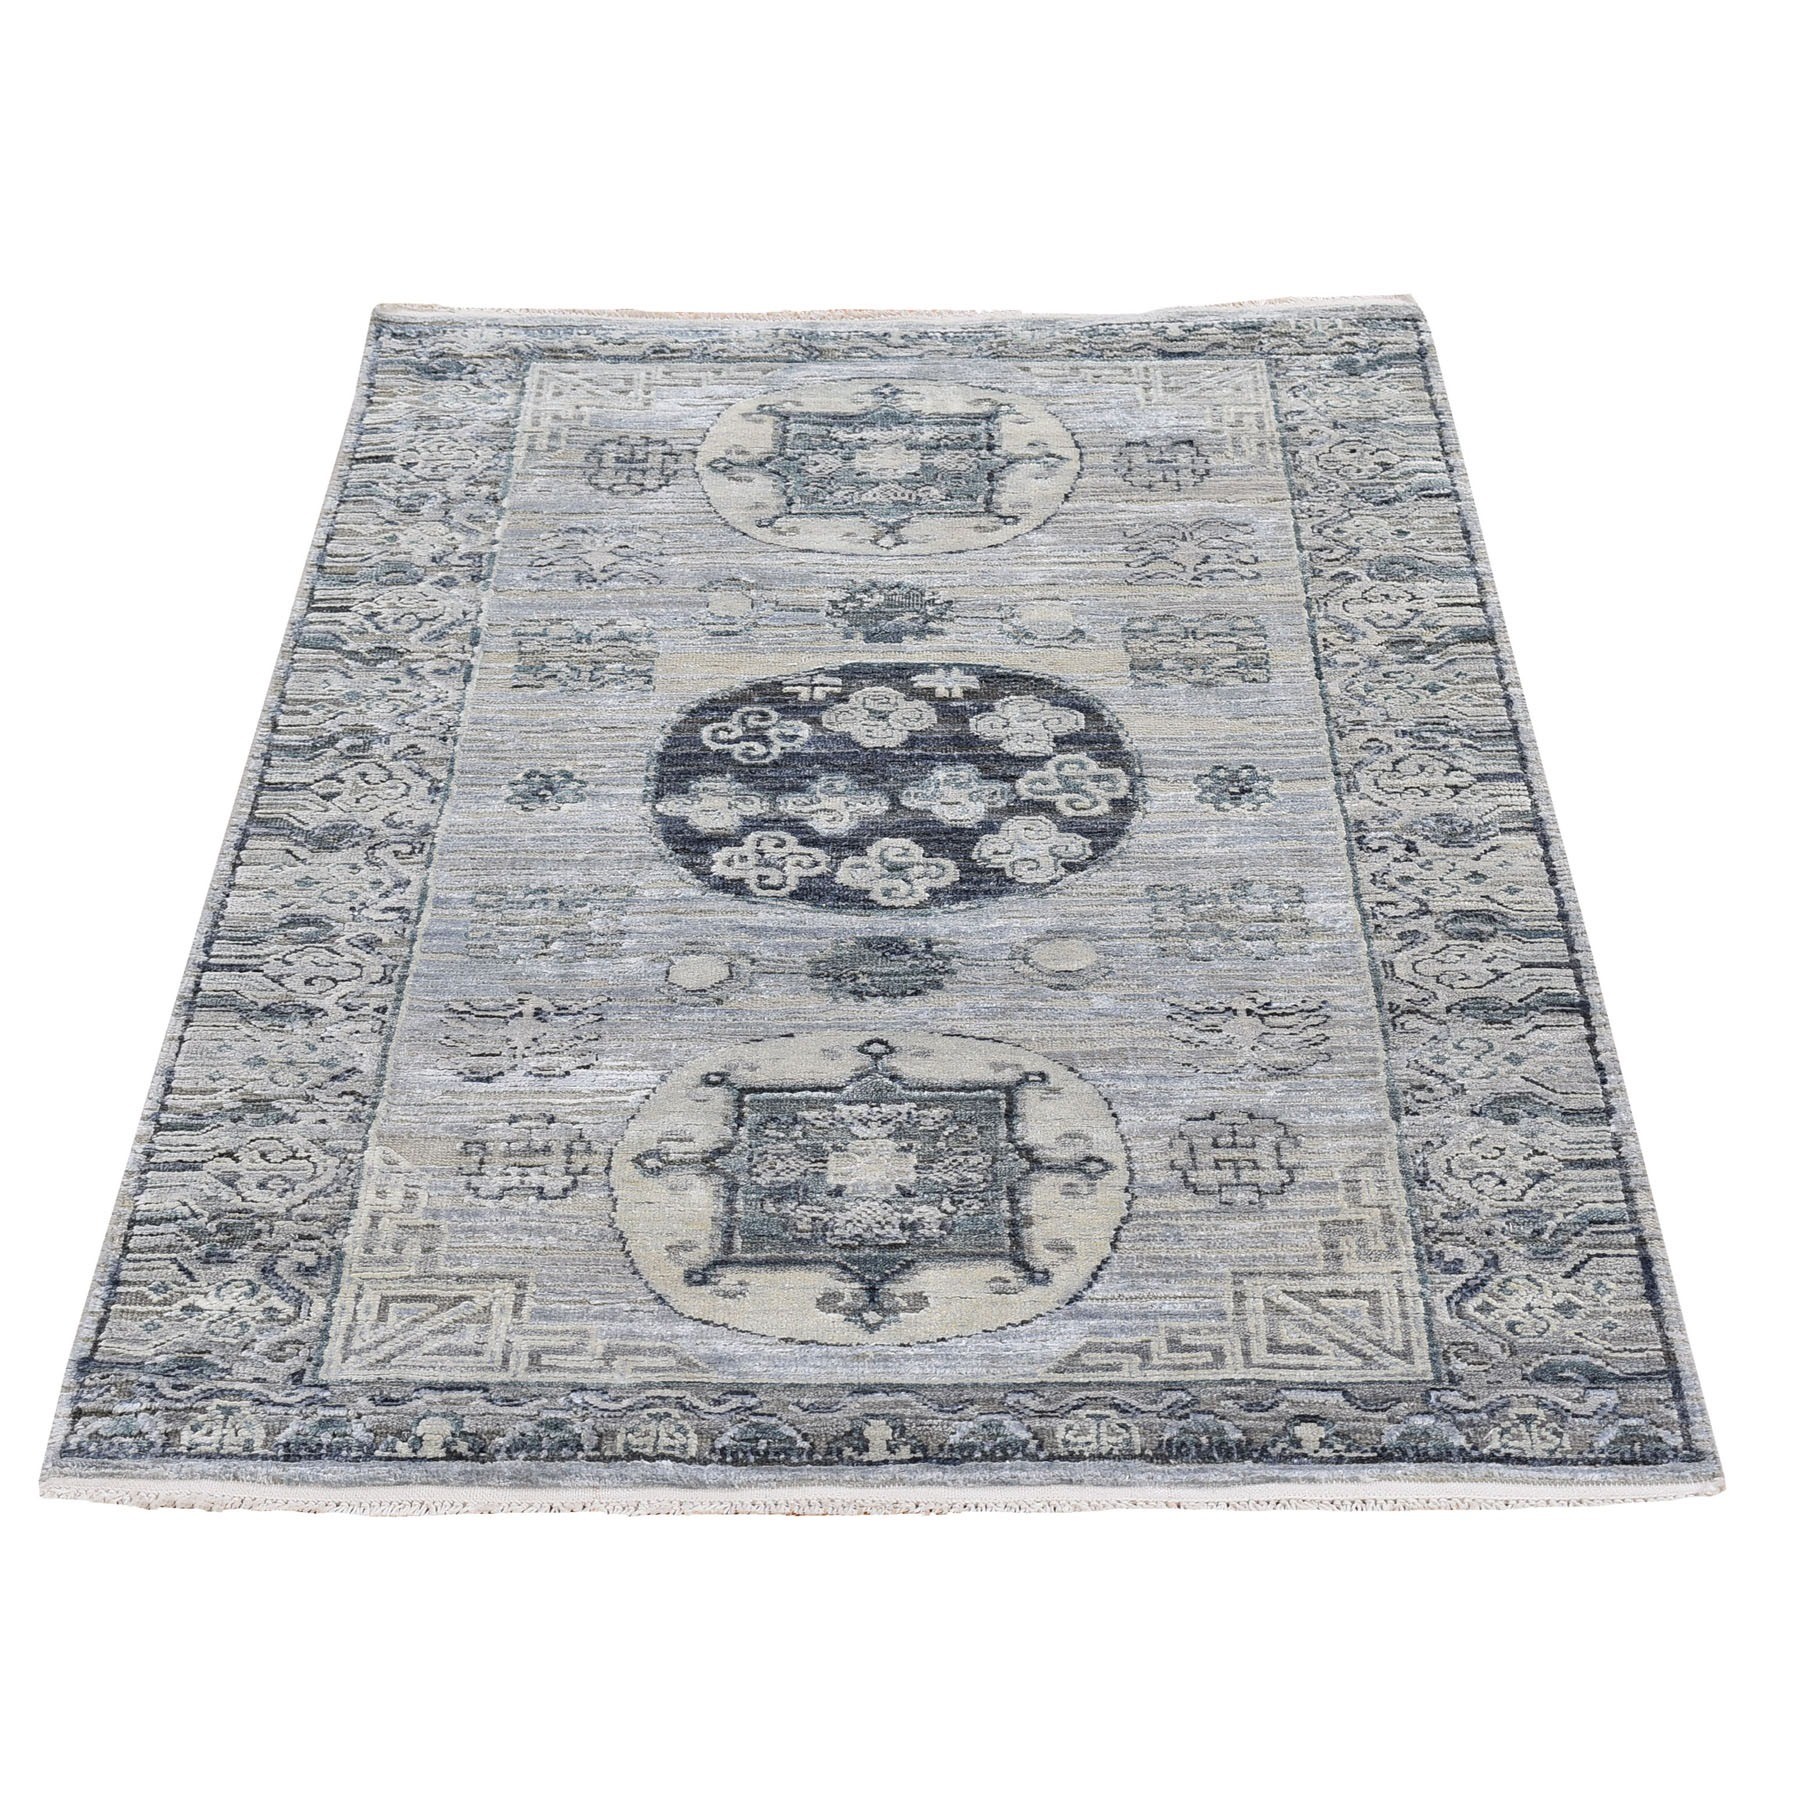 "3'x5'3"" Khotan Design Pure Silk with Textured Wool Gray Hand Knotted Oriental Rug"